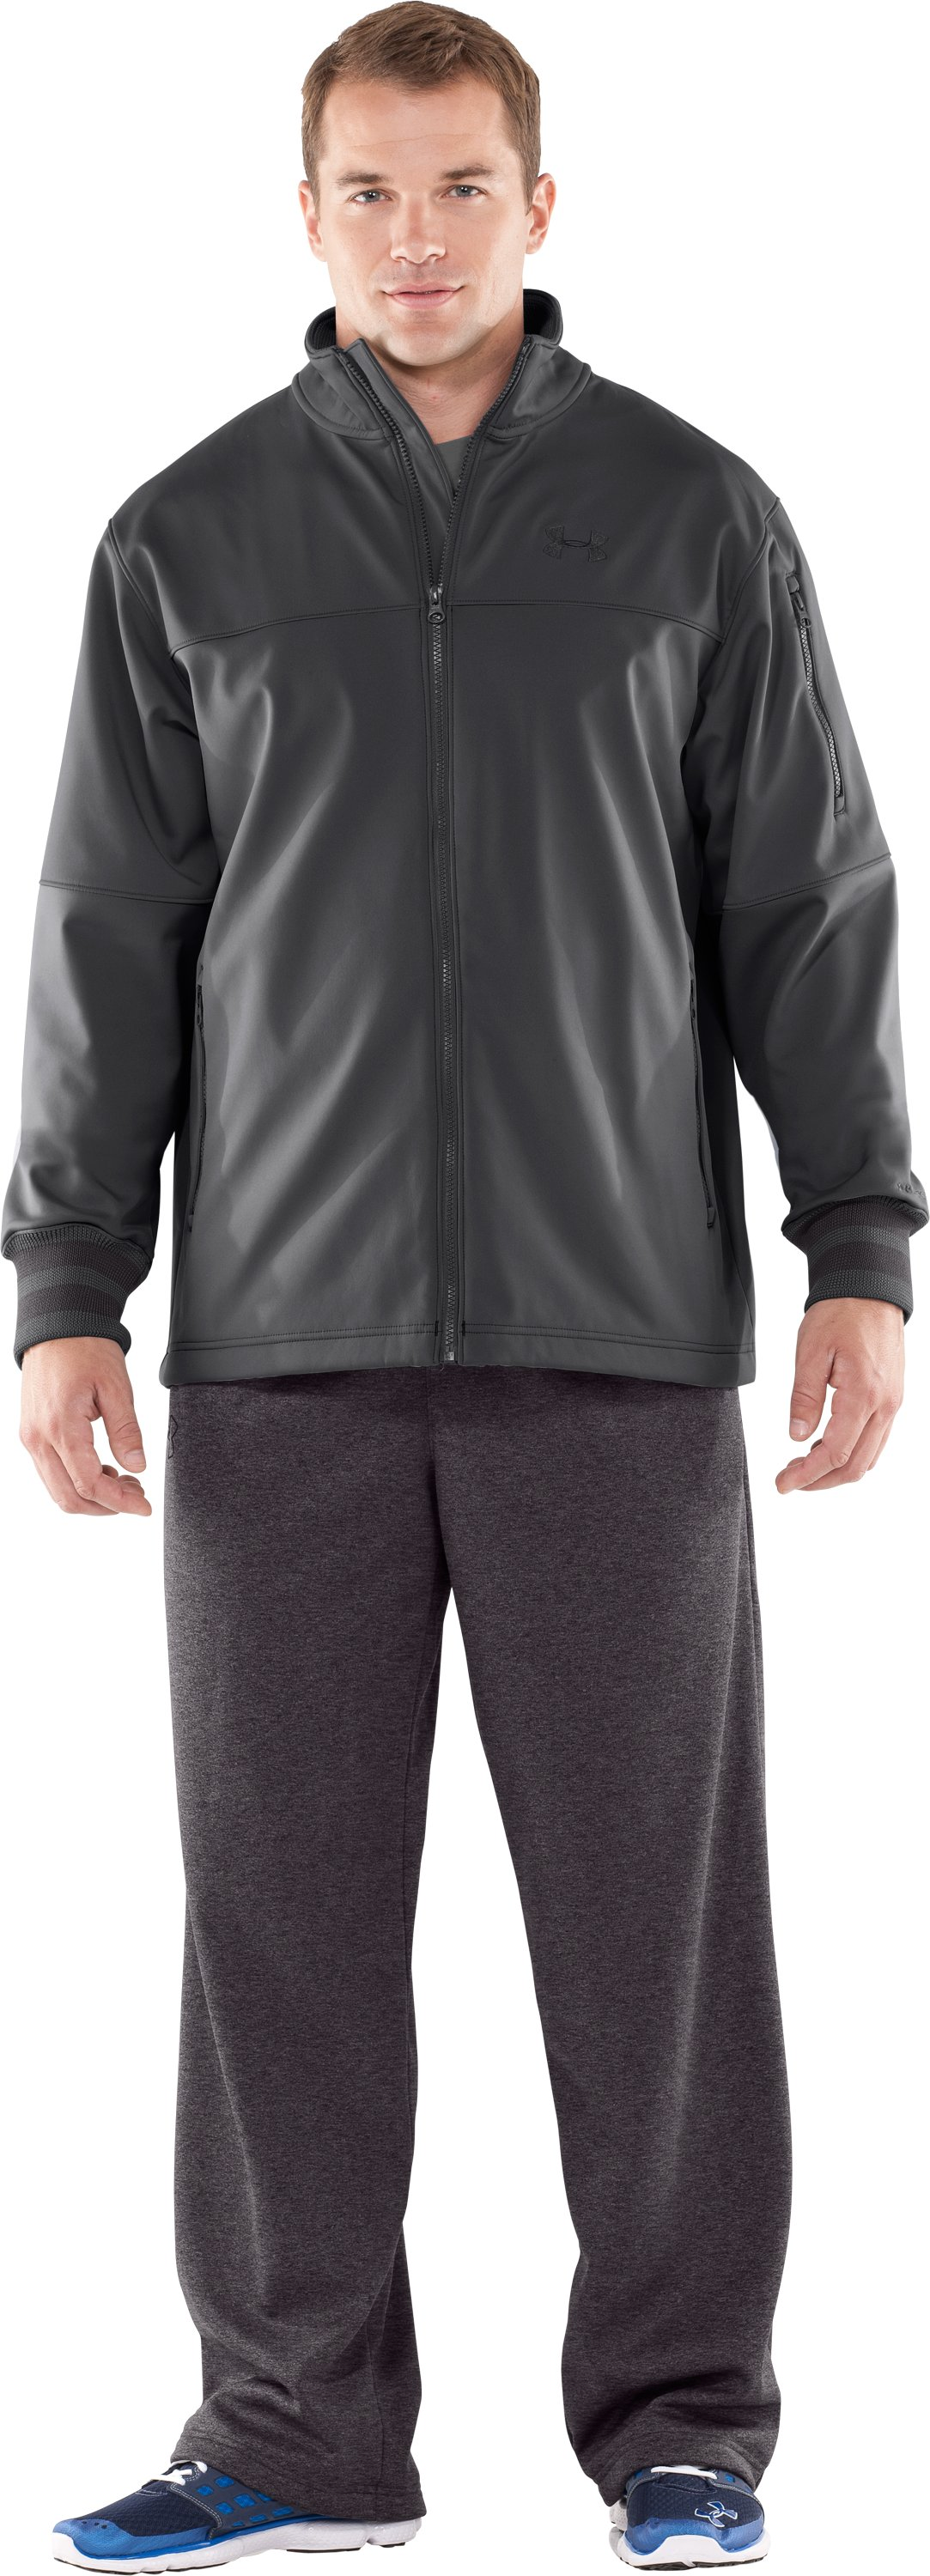 Men's UA Contender Storm Softshell Jacket, Graphite, zoomed image